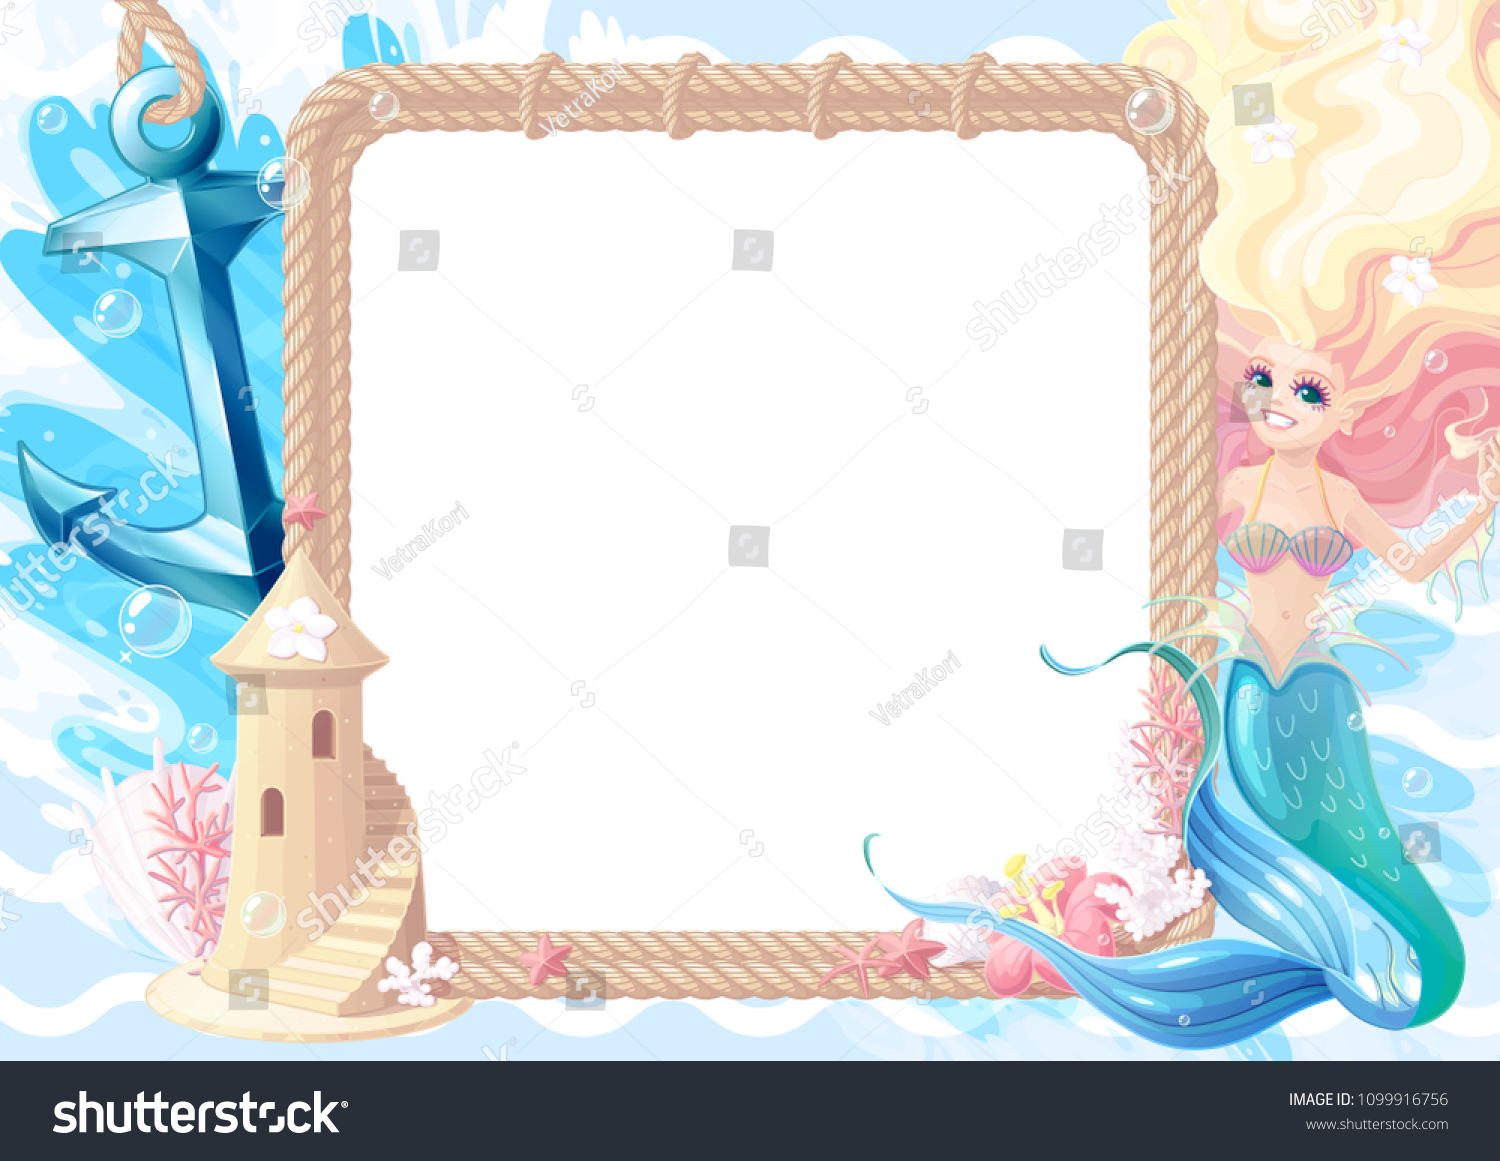 Summer Maritime Collage Frame Template Photo Stock Illustration ...